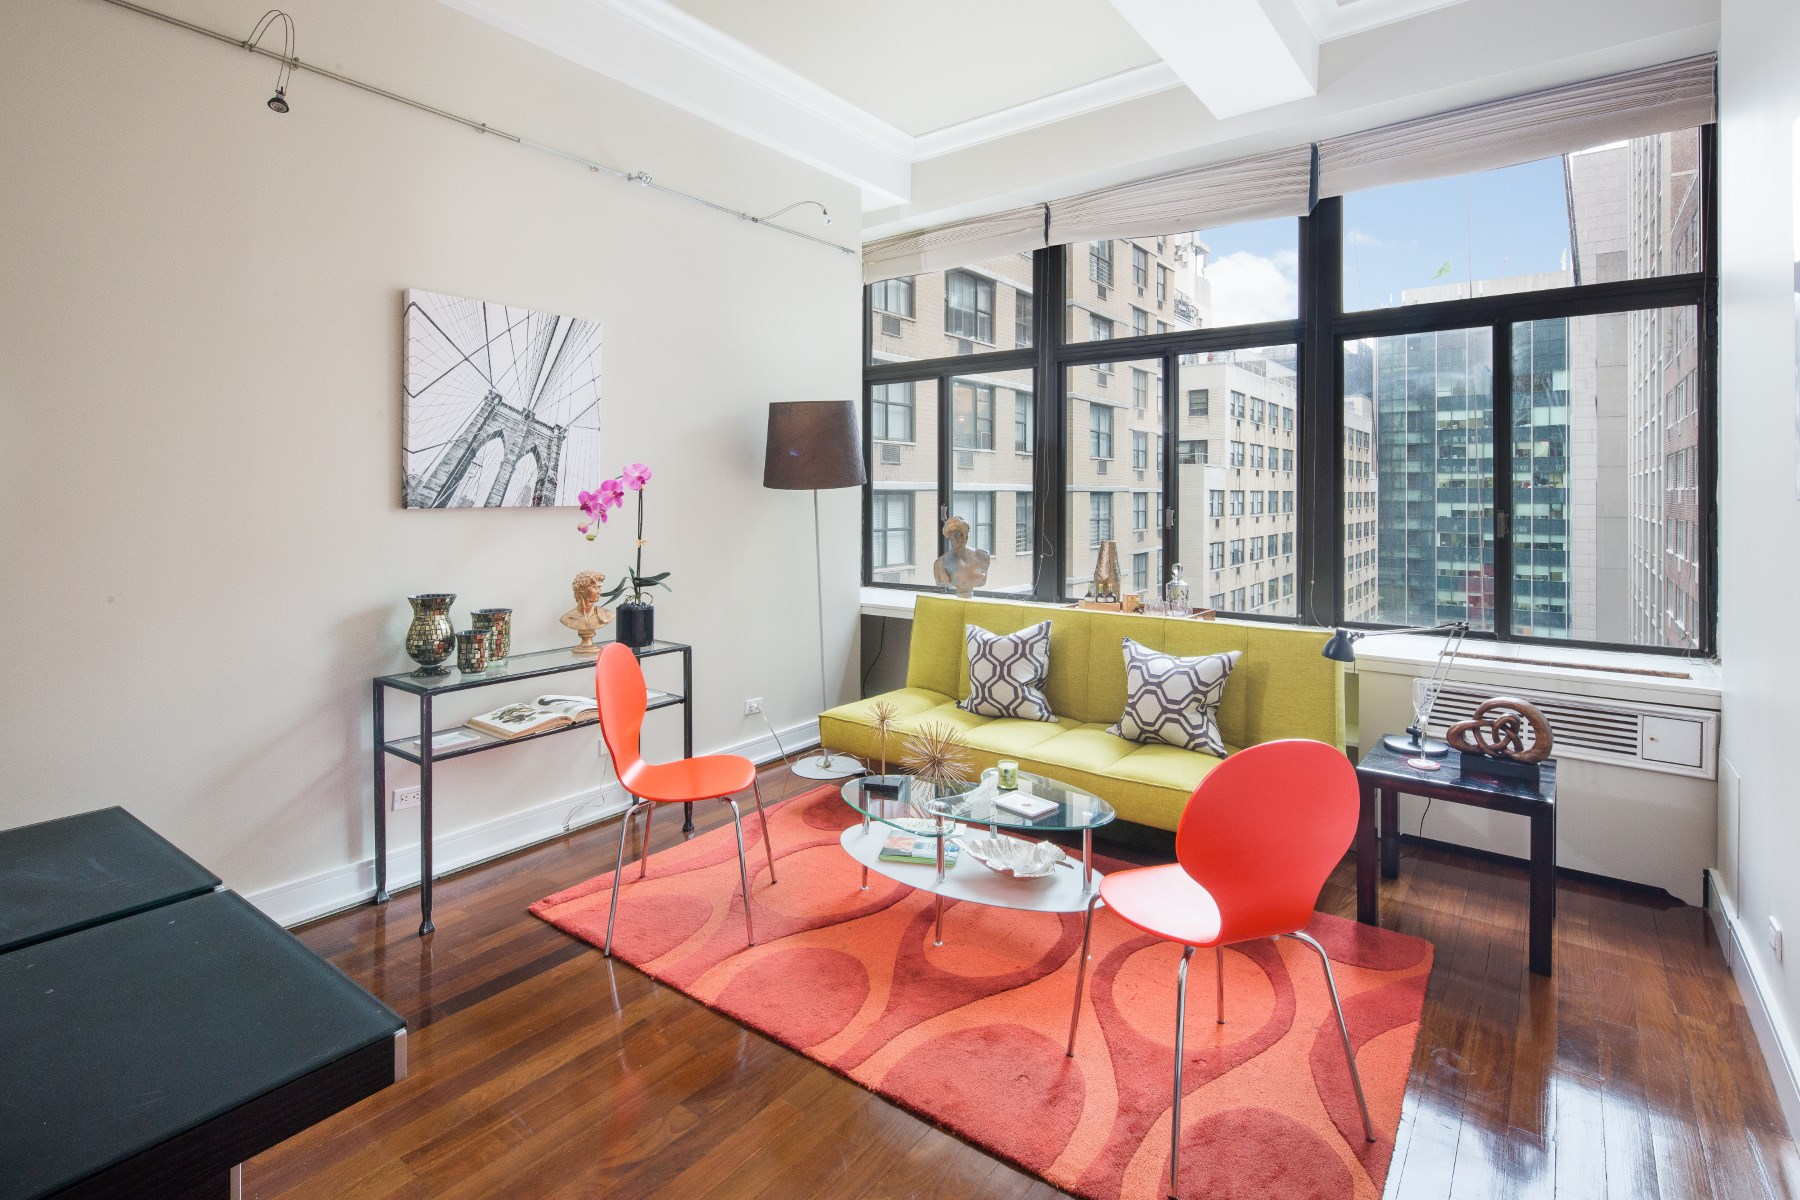 Apartamento por un Venta en Architectural Loft of Substance 310 East 46th Street Apt 7K Midtown East, New York, Nueva York, 10017 Estados Unidos